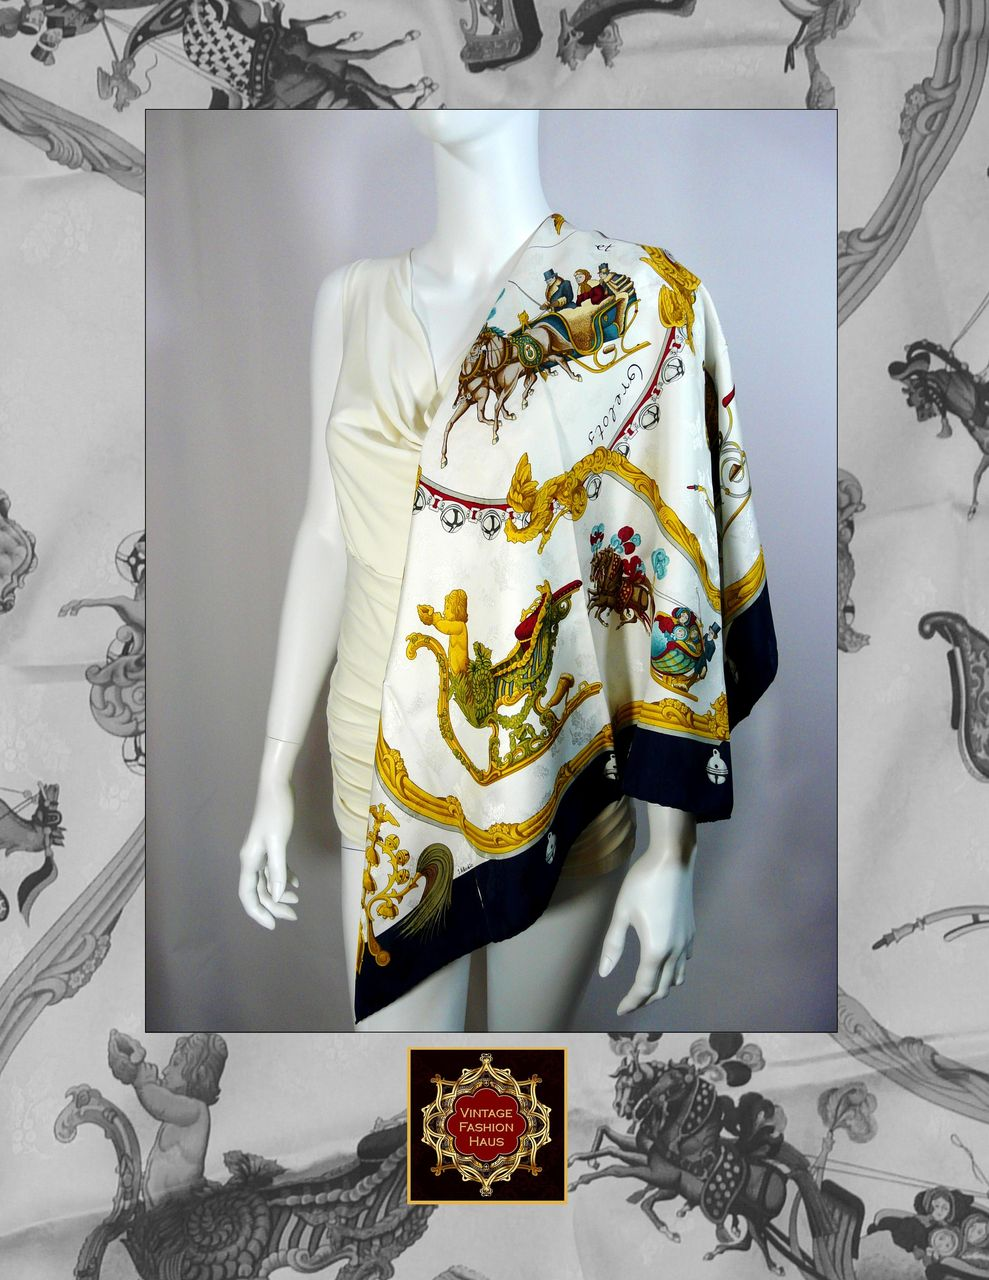 Authentic Vintage Jacquard Hermes Silk Scarf Plumes Et Grelots Authentic Vintage Hermes Scarves